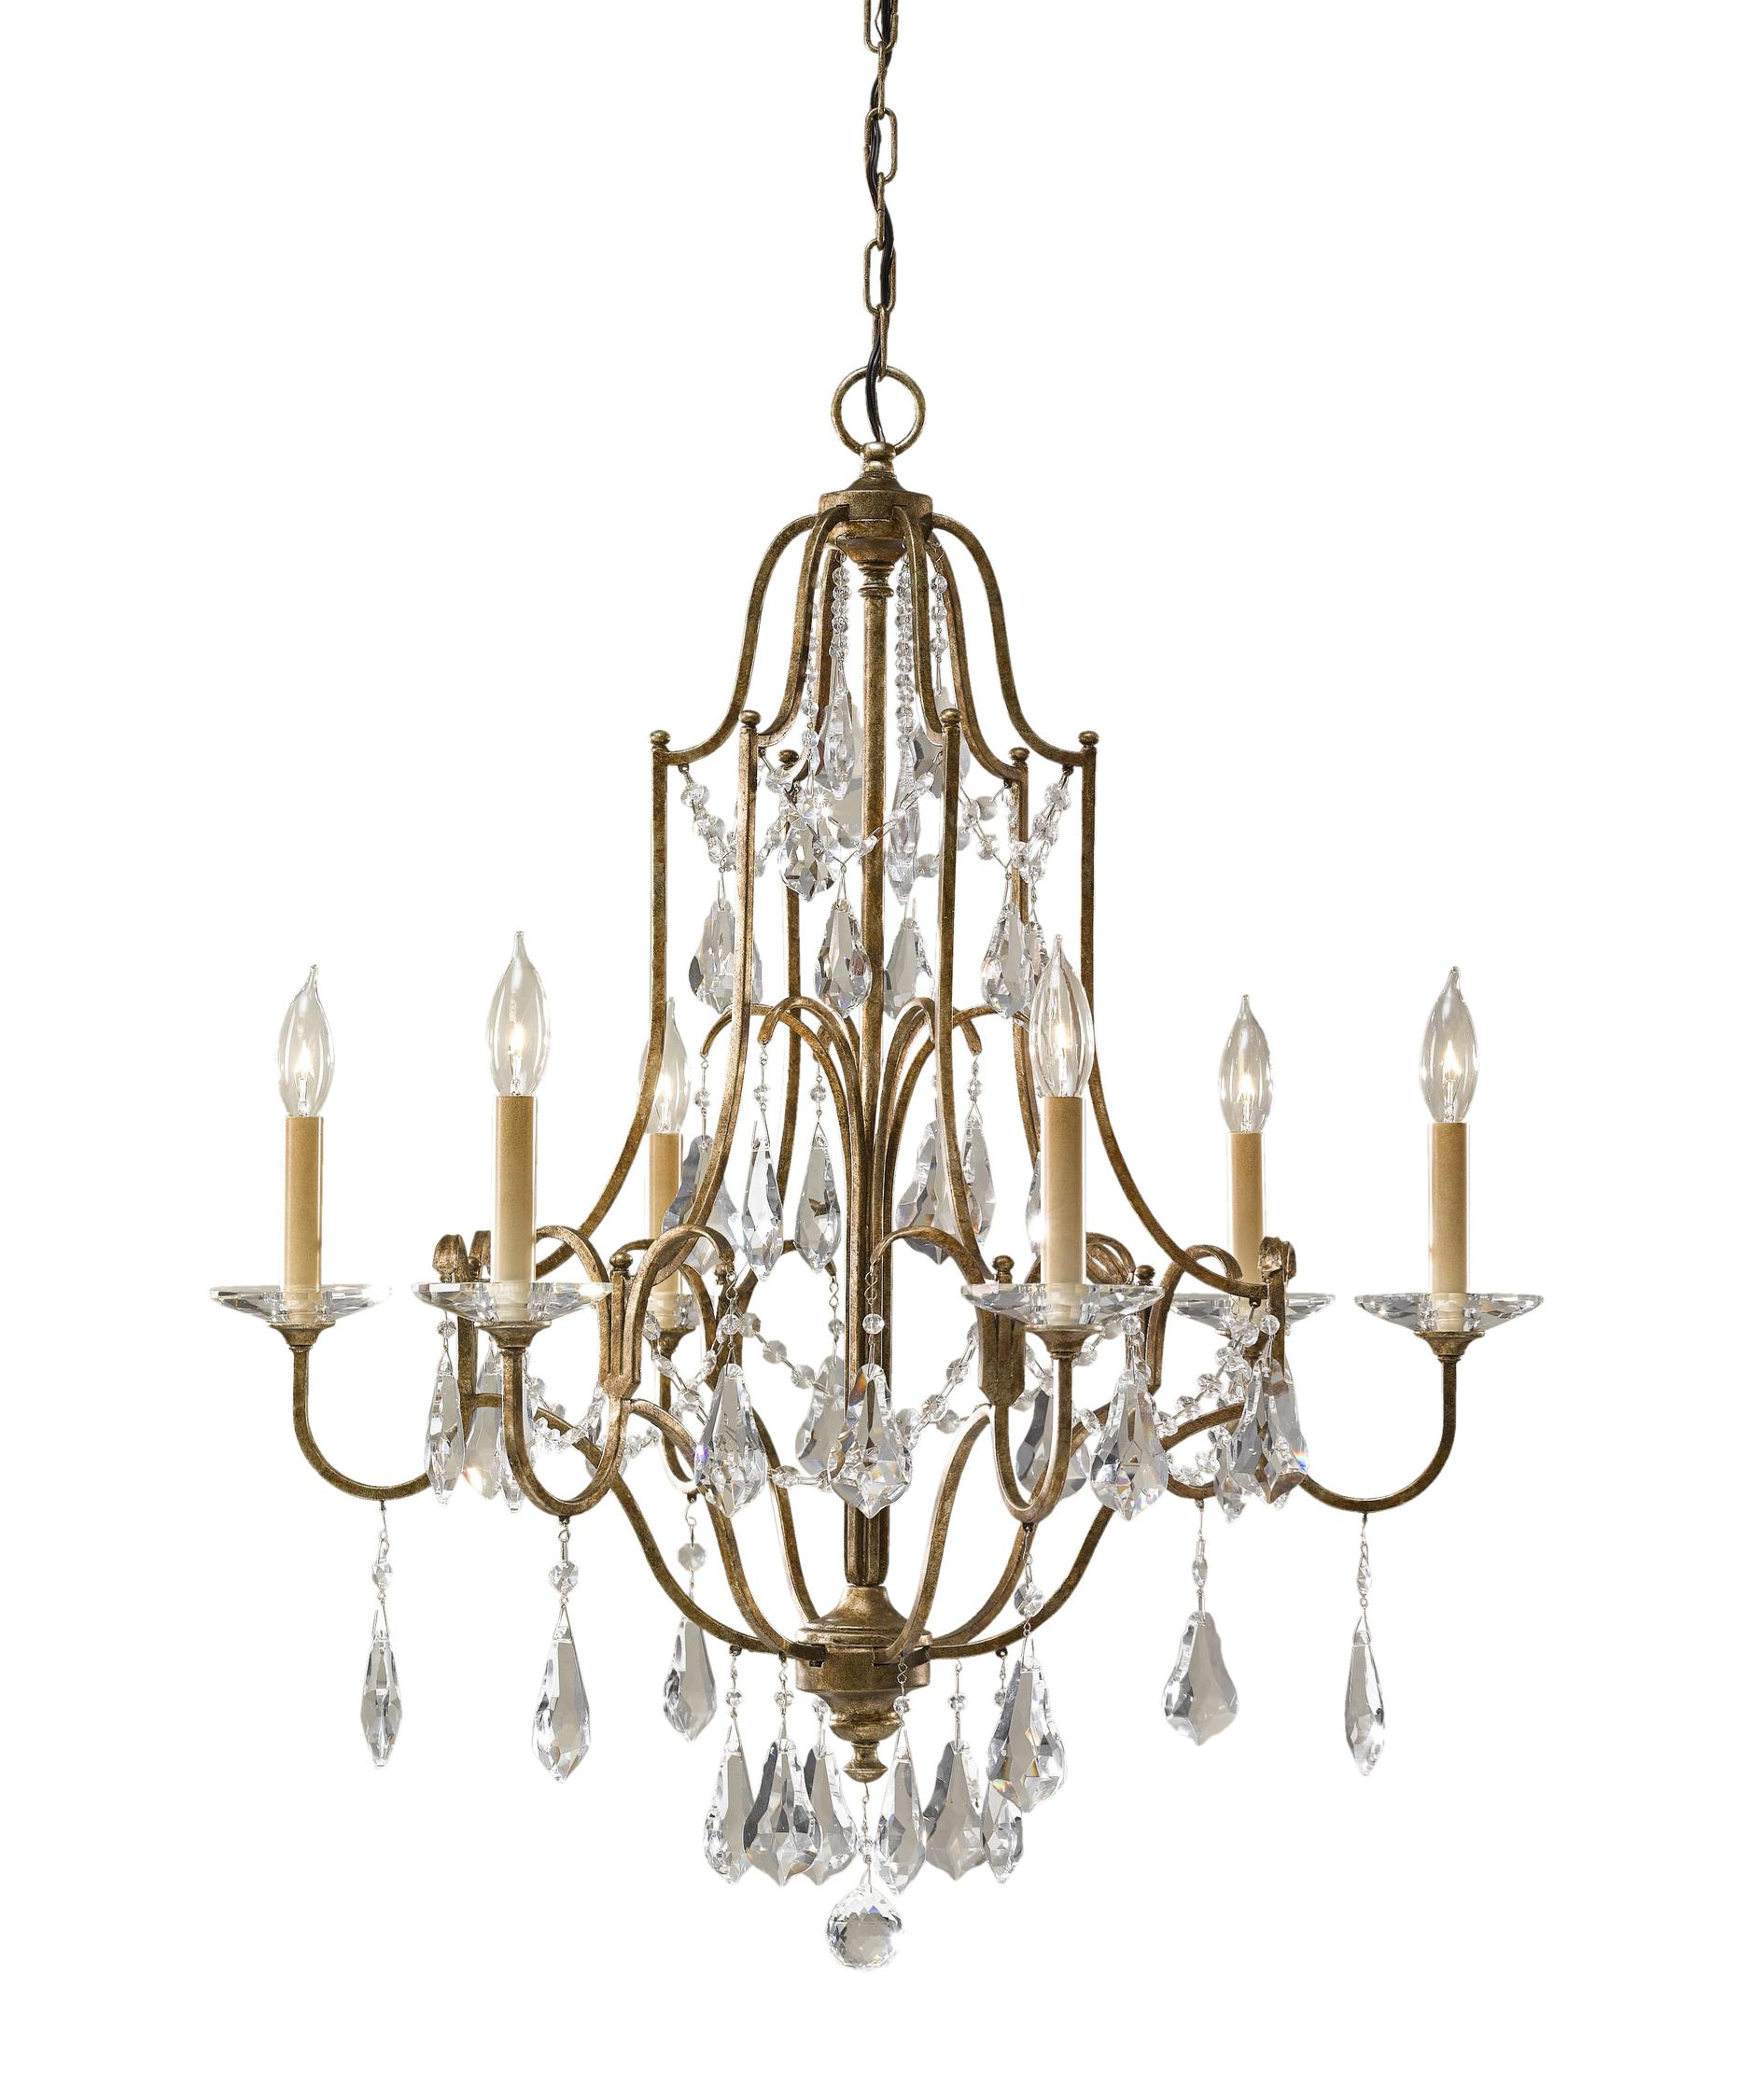 Murray Feiss Valentina 29 Inch Wide 6 Light Chandelier – Murray Feiss Chandeliers